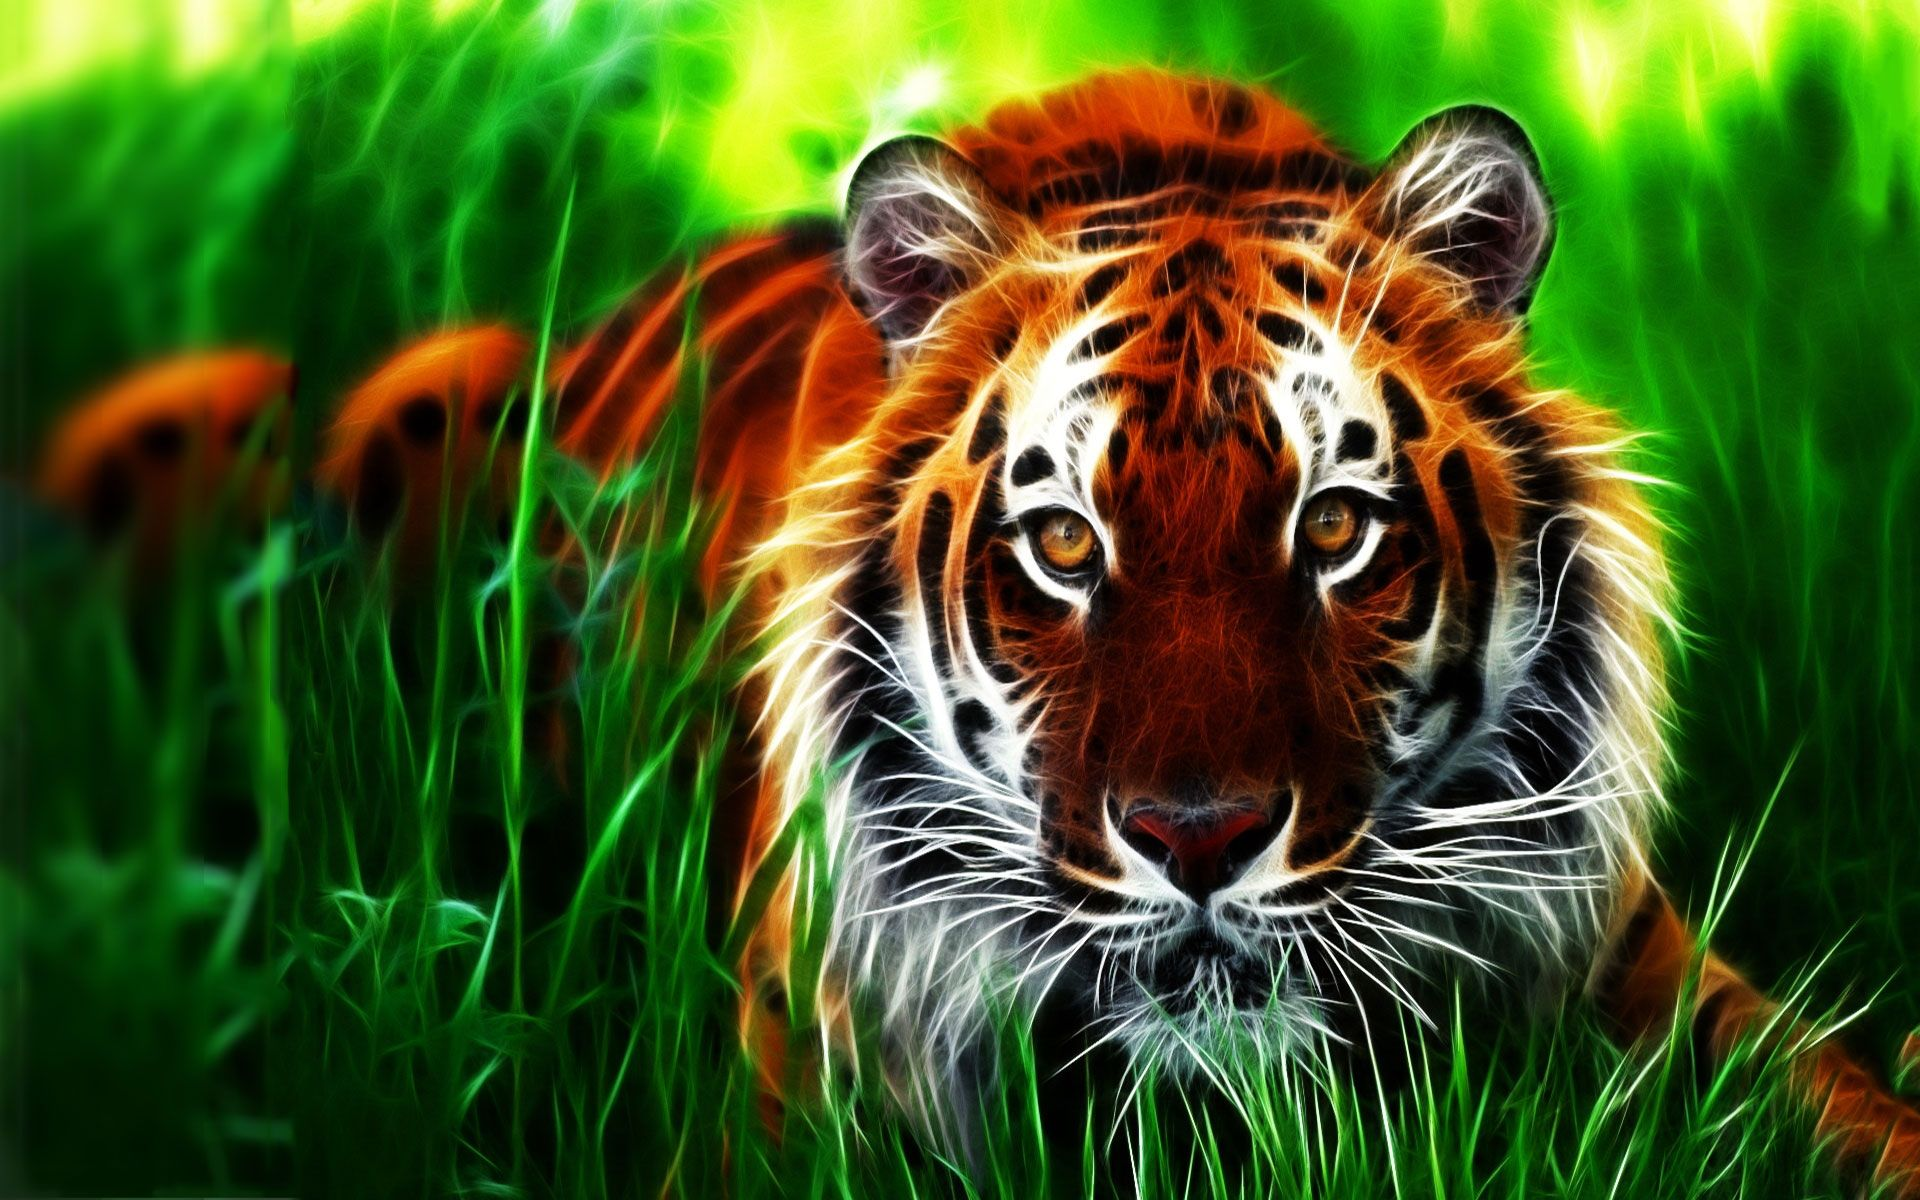 best 3d animal wallpaper | hd animated animal wallpaper | fantasy